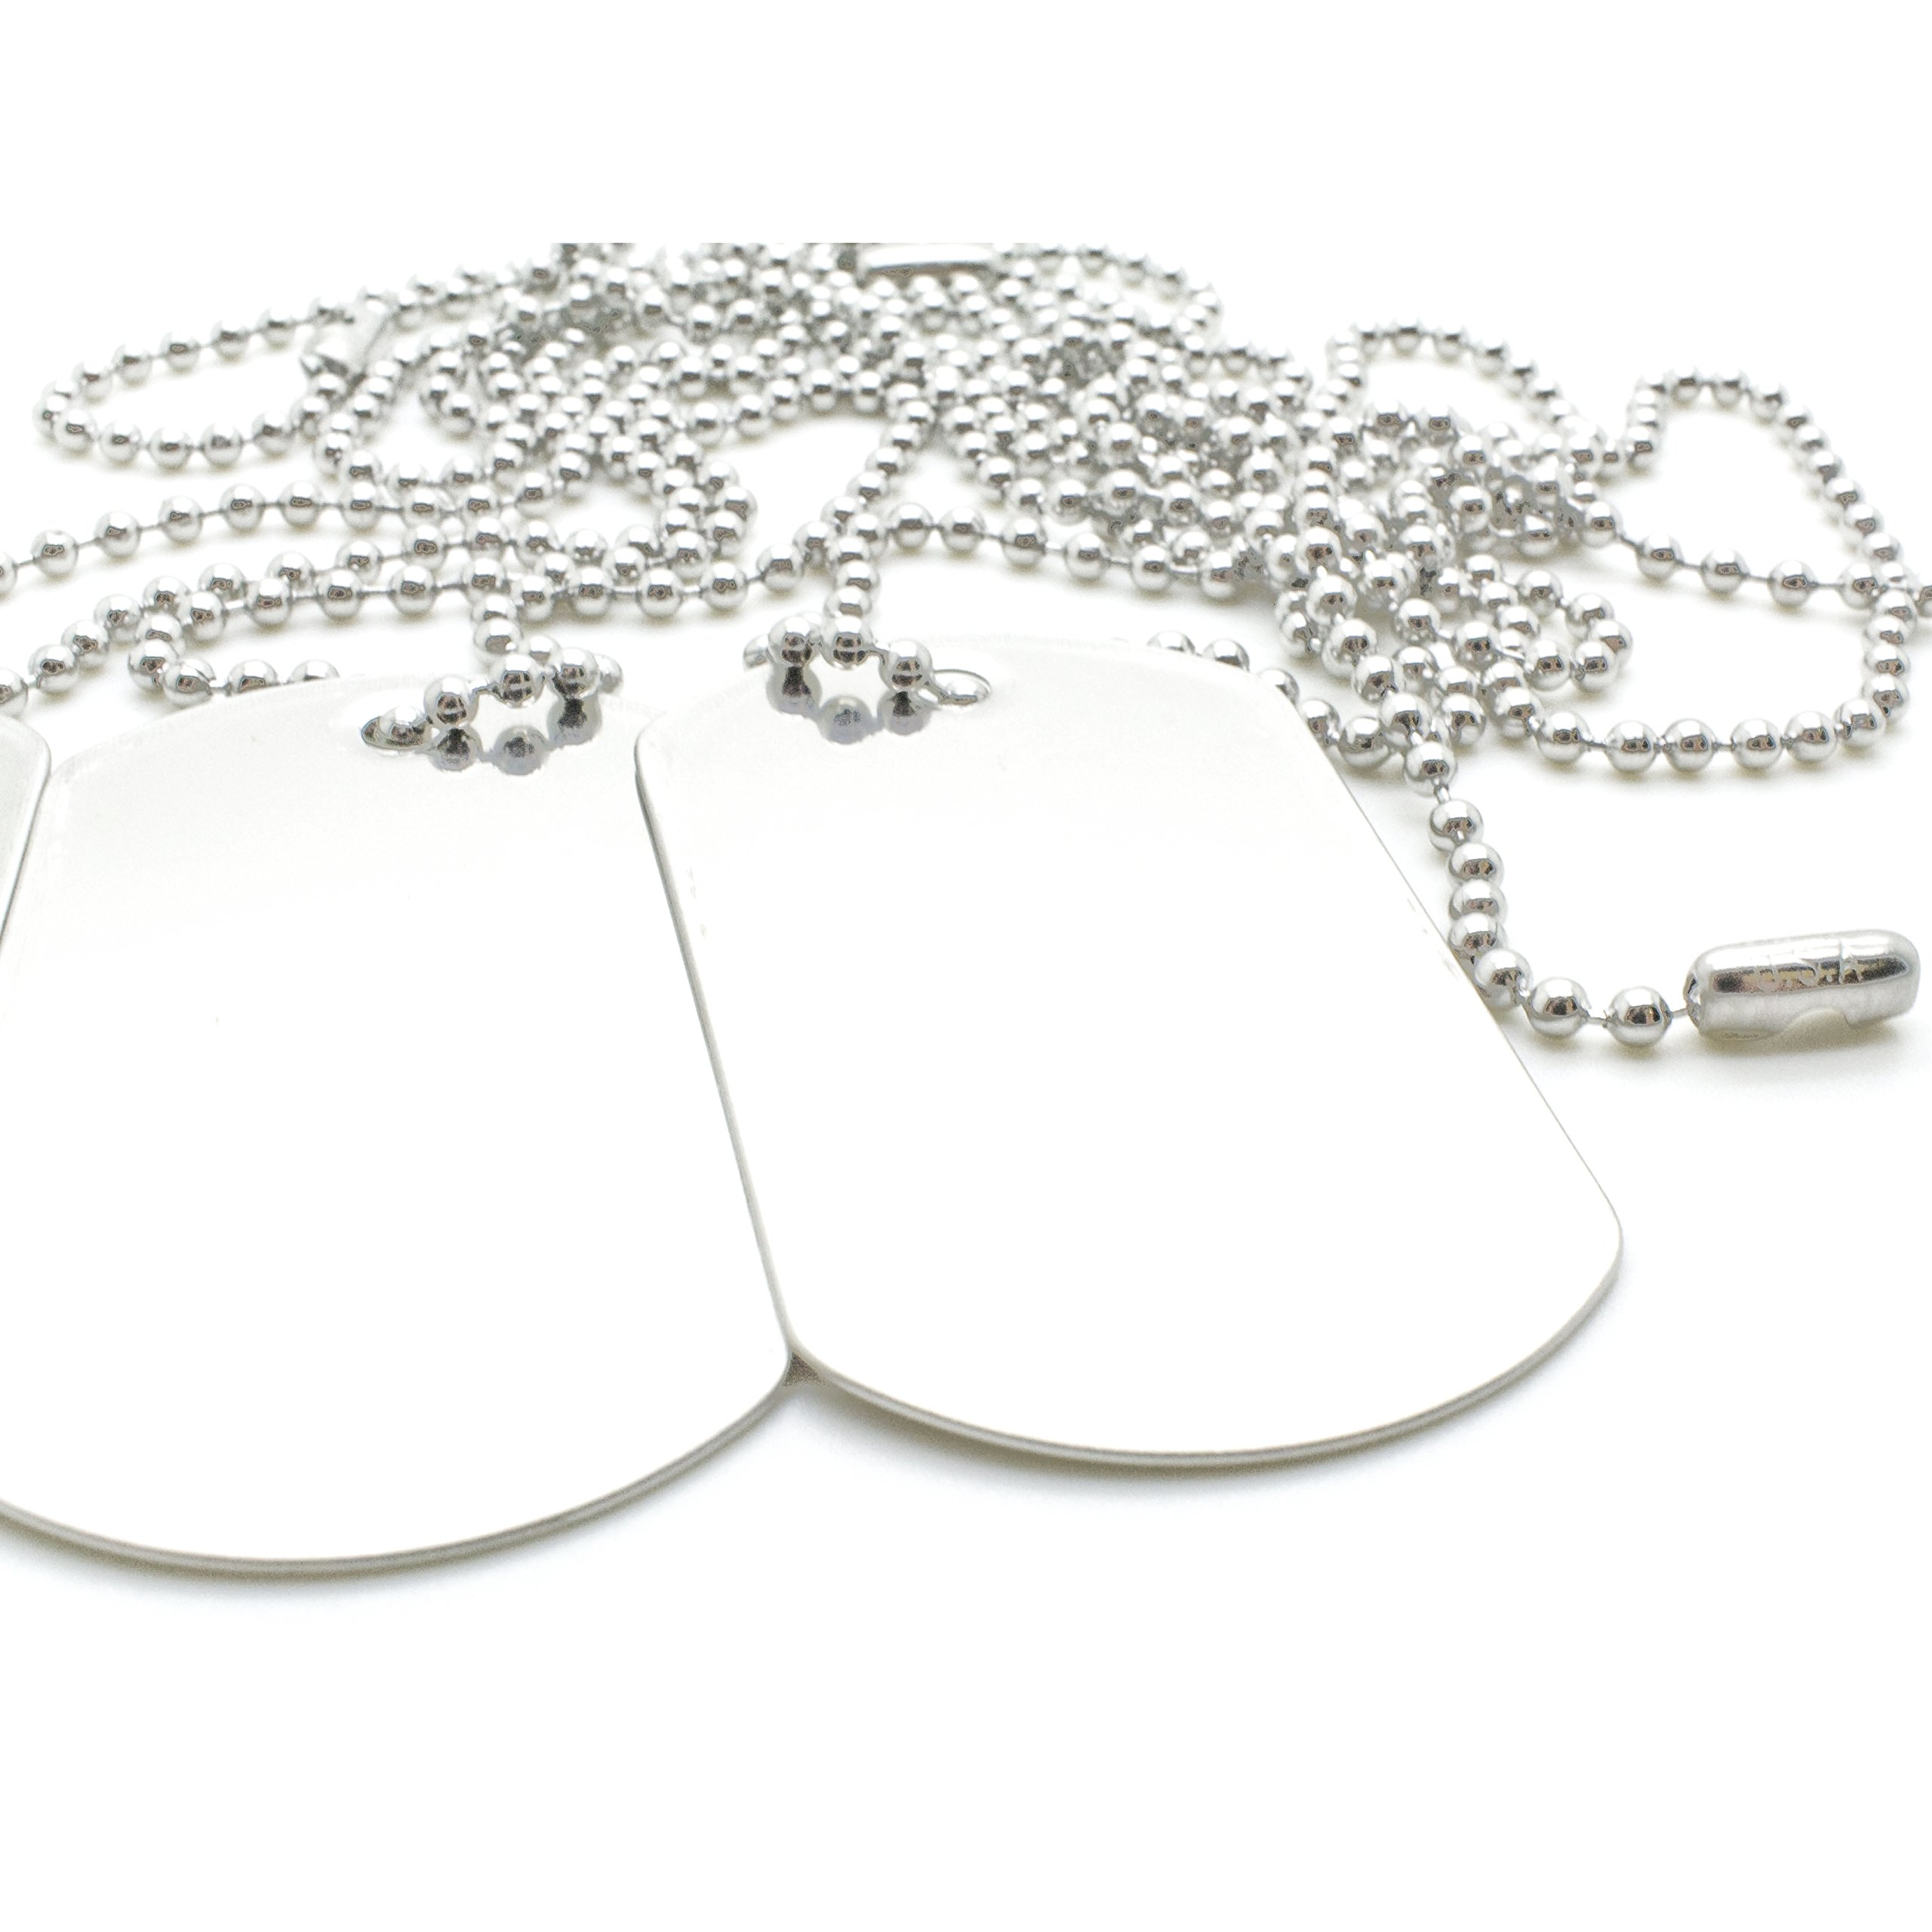 100 COMBO Shiny Stainless Steel Military spec Dog Tags - BLANK with Stainless Steel Chains (100 dog tags w/ 30'' chains)